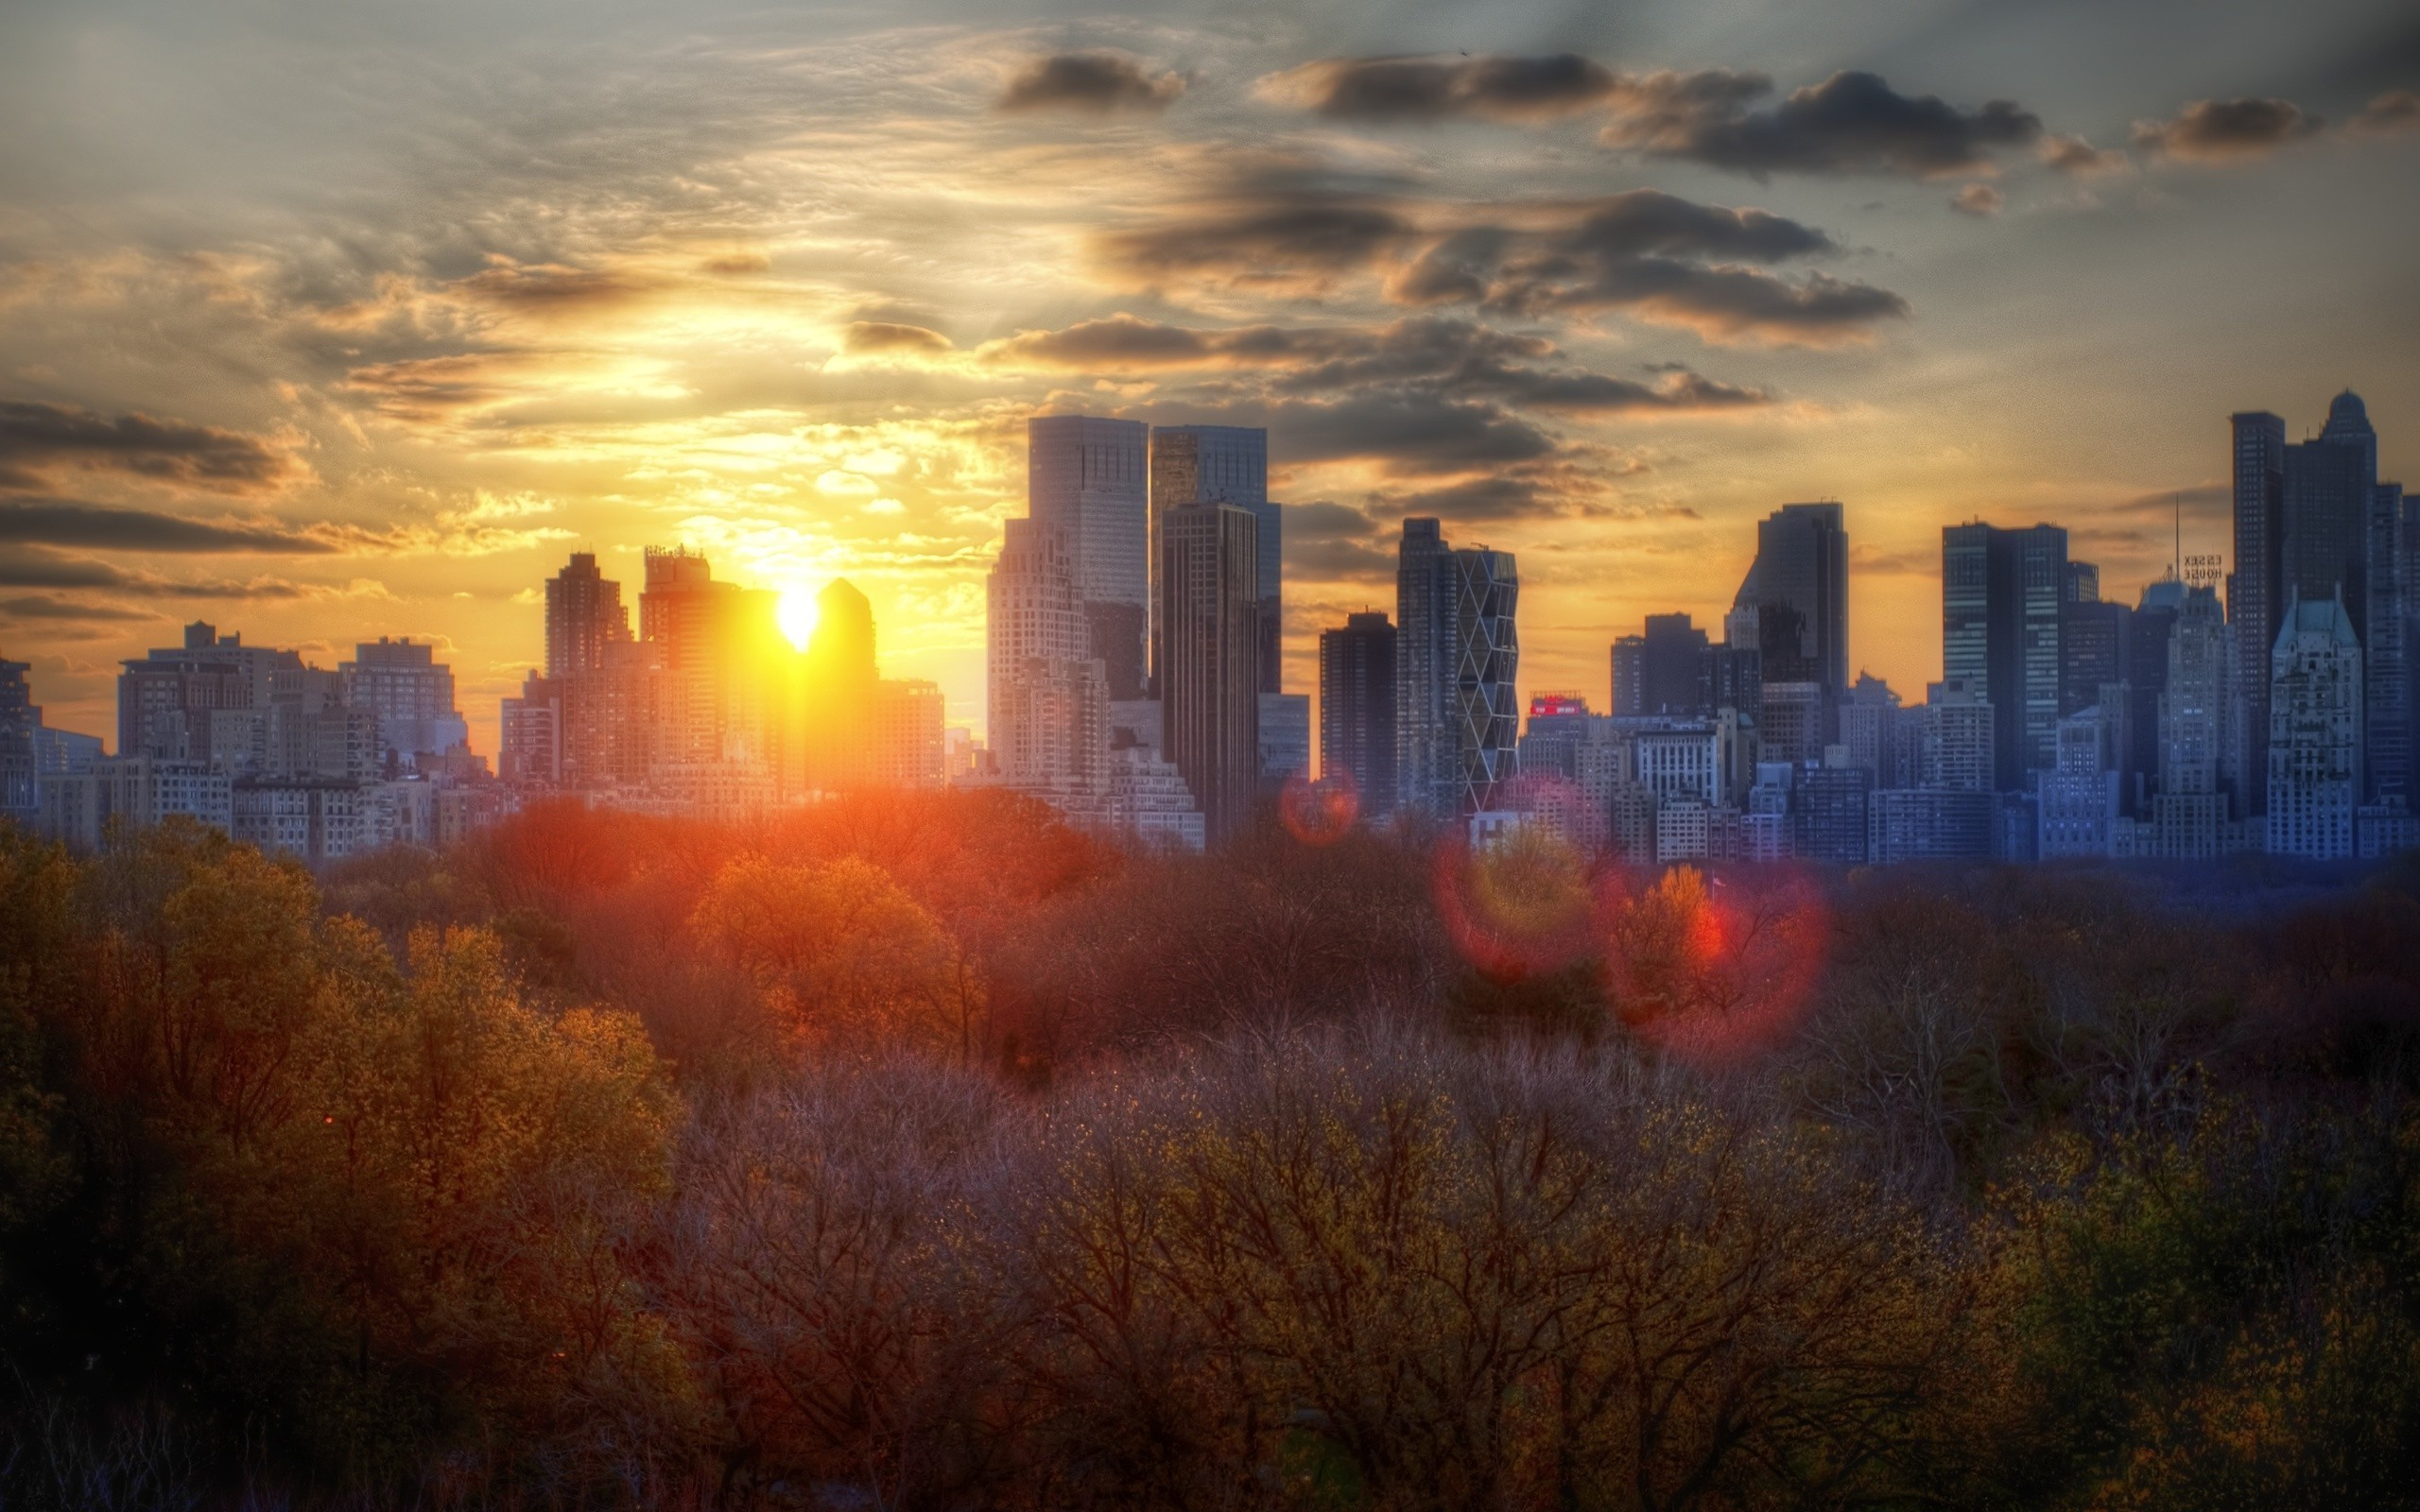 New York City Sunrise Wallpaper 4K Wide Screen Wallpaper 1080p2K4K 2560x1600